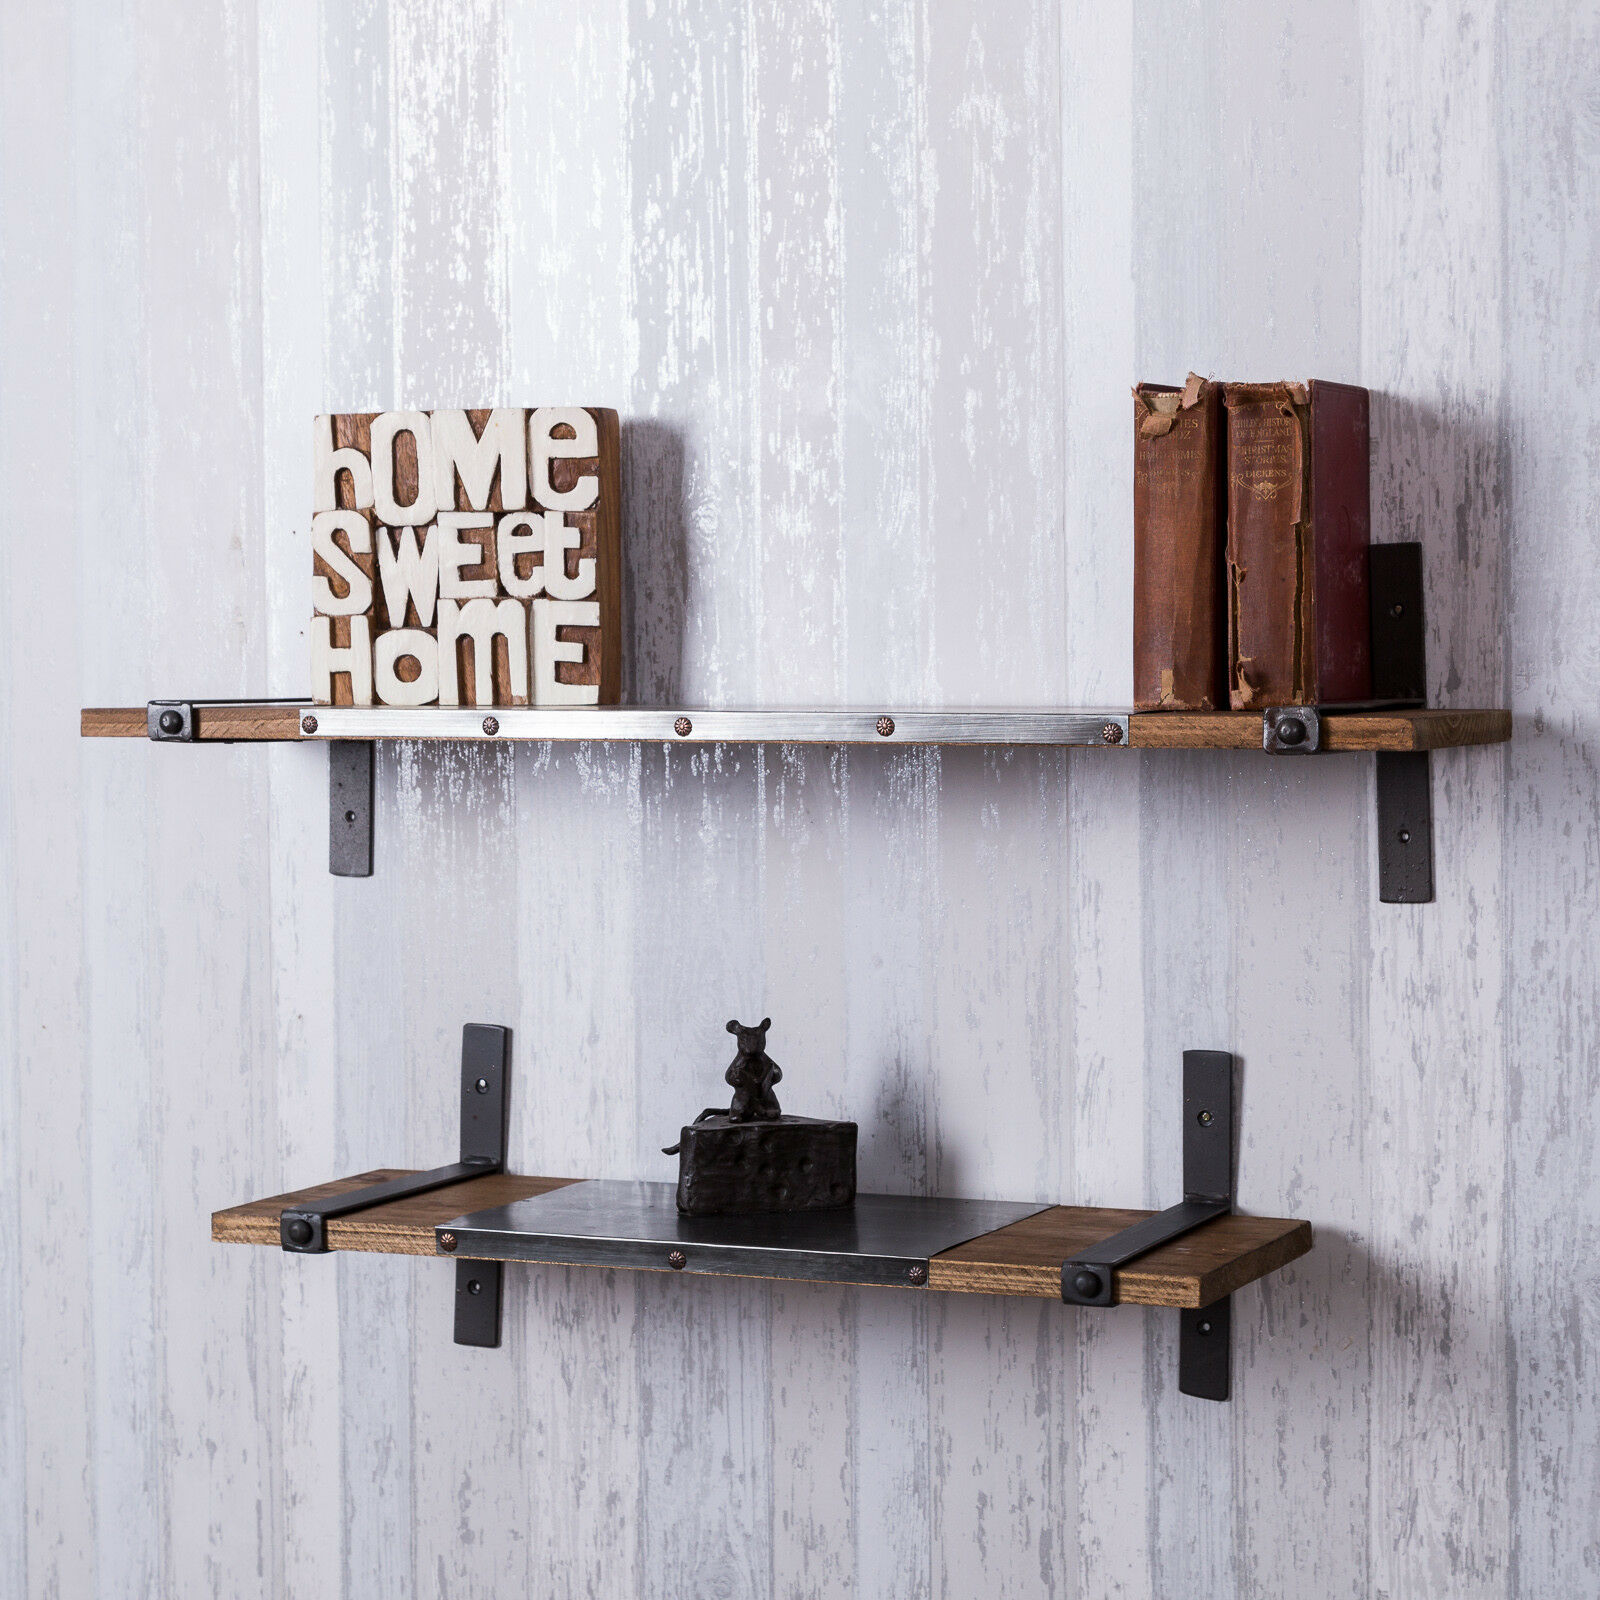 Set of 2 industrial style wall shelves wood metal retro rustic warehouse urban